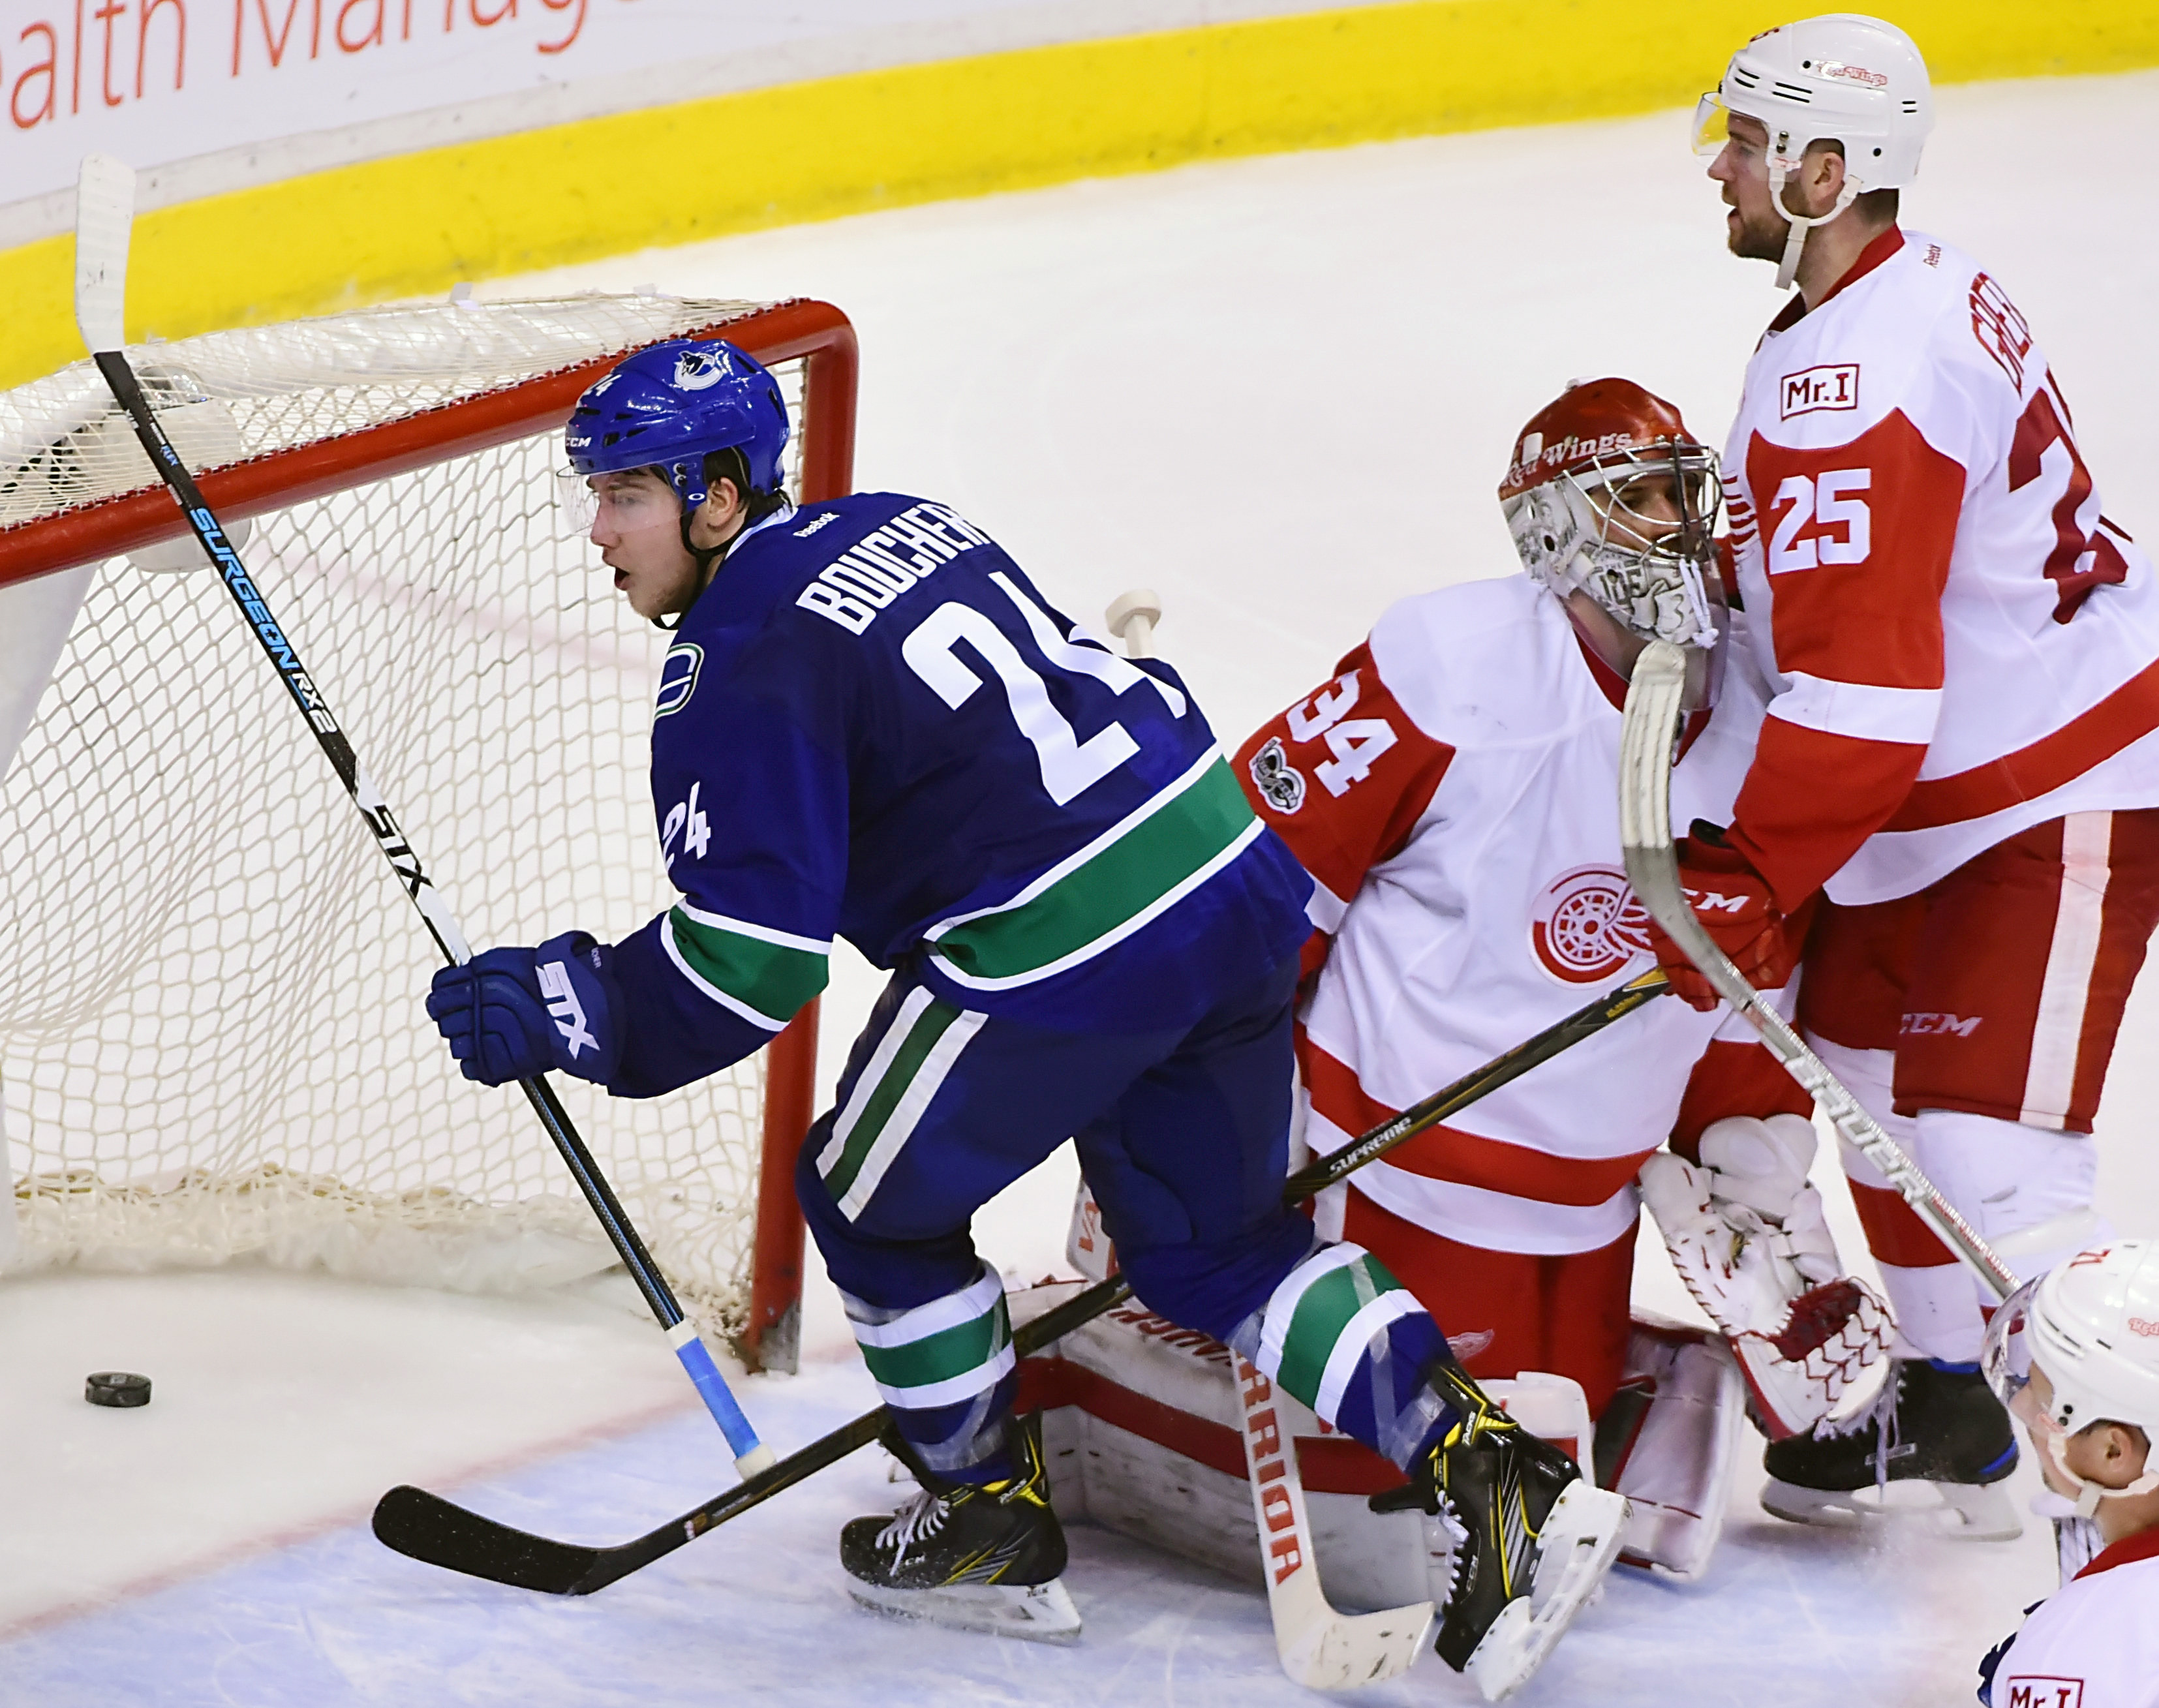 9909086-nhl-detroit-red-wings-at-vancouver-canucks